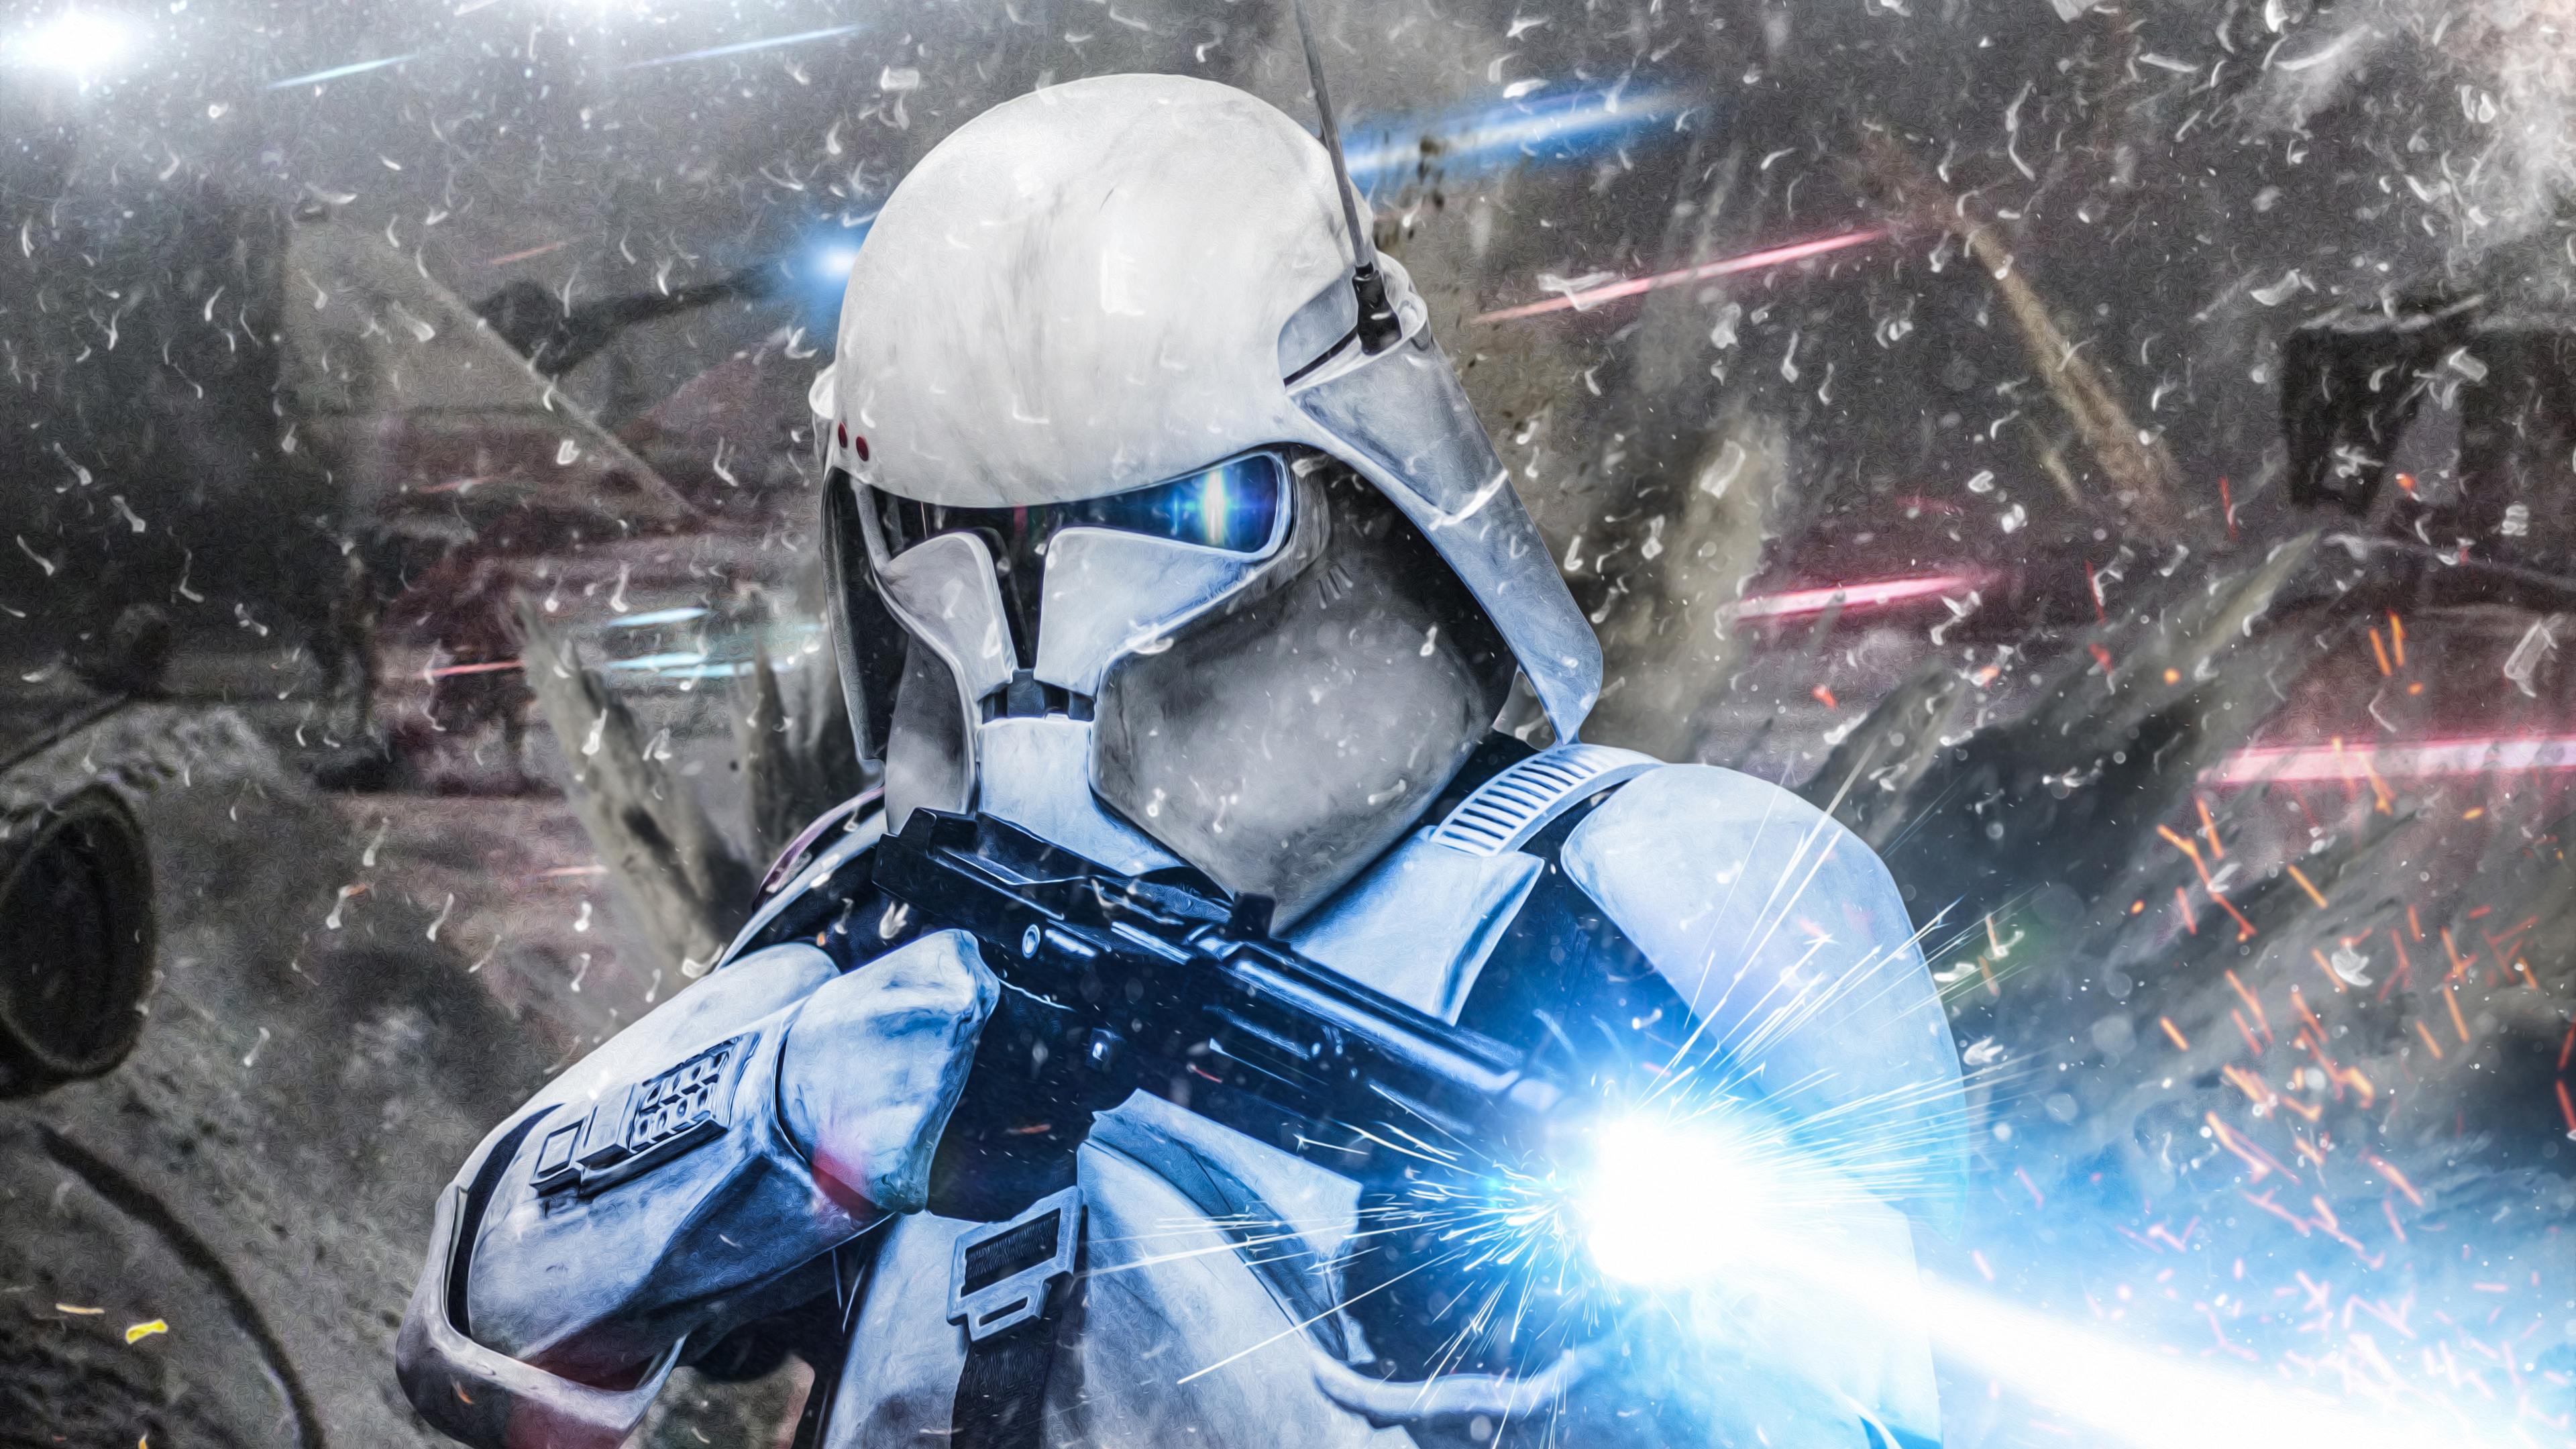 stormtrooper commander 1562107230 - Stormtrooper Commander - stormtrooper wallpapers, star wars wallpapers, movies wallpapers, hd-wallpapers, deviantart wallpapers, 4k-wallpapers